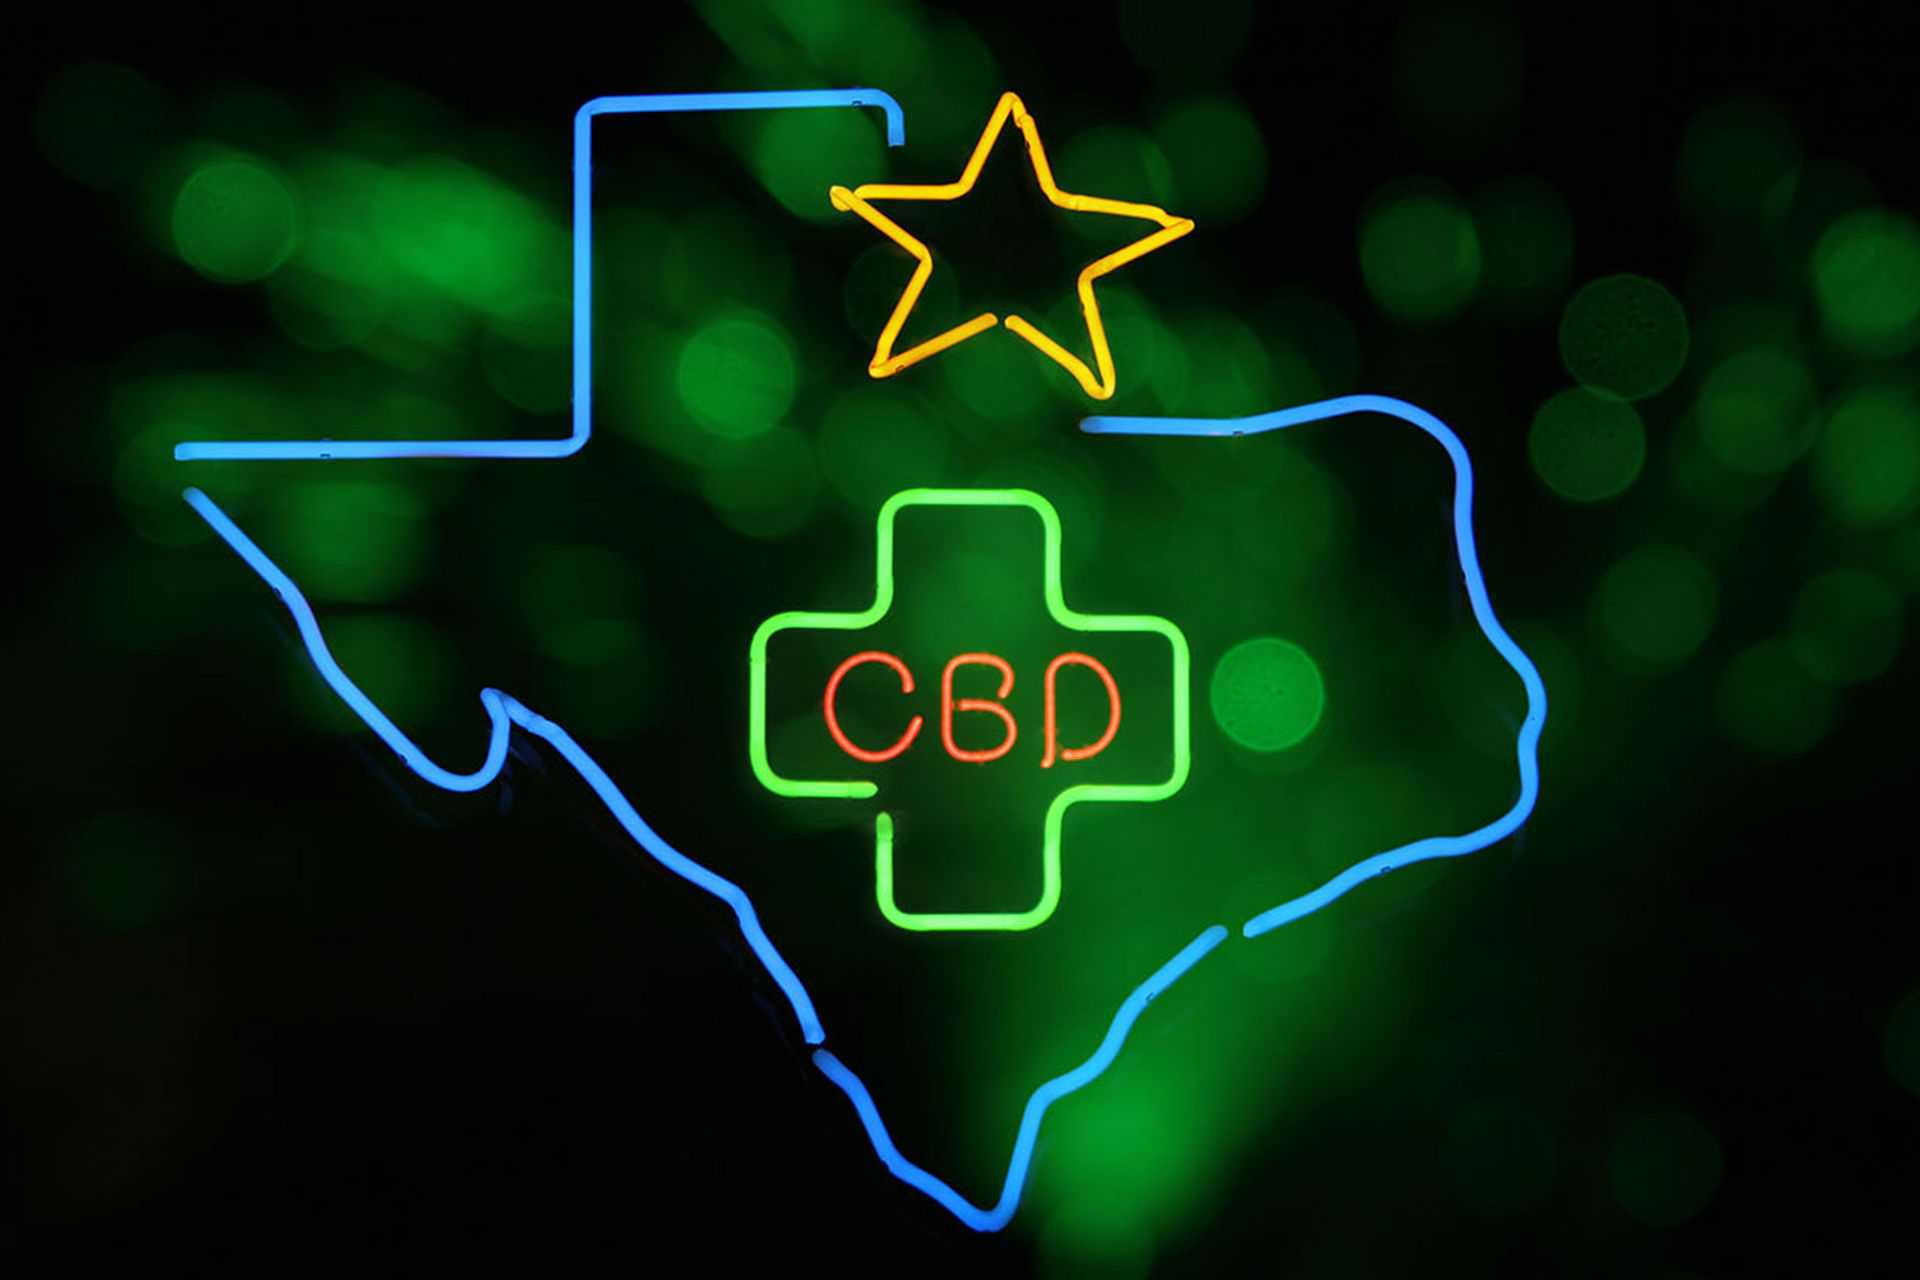 Is CBD oil legal in Texas in 2019?